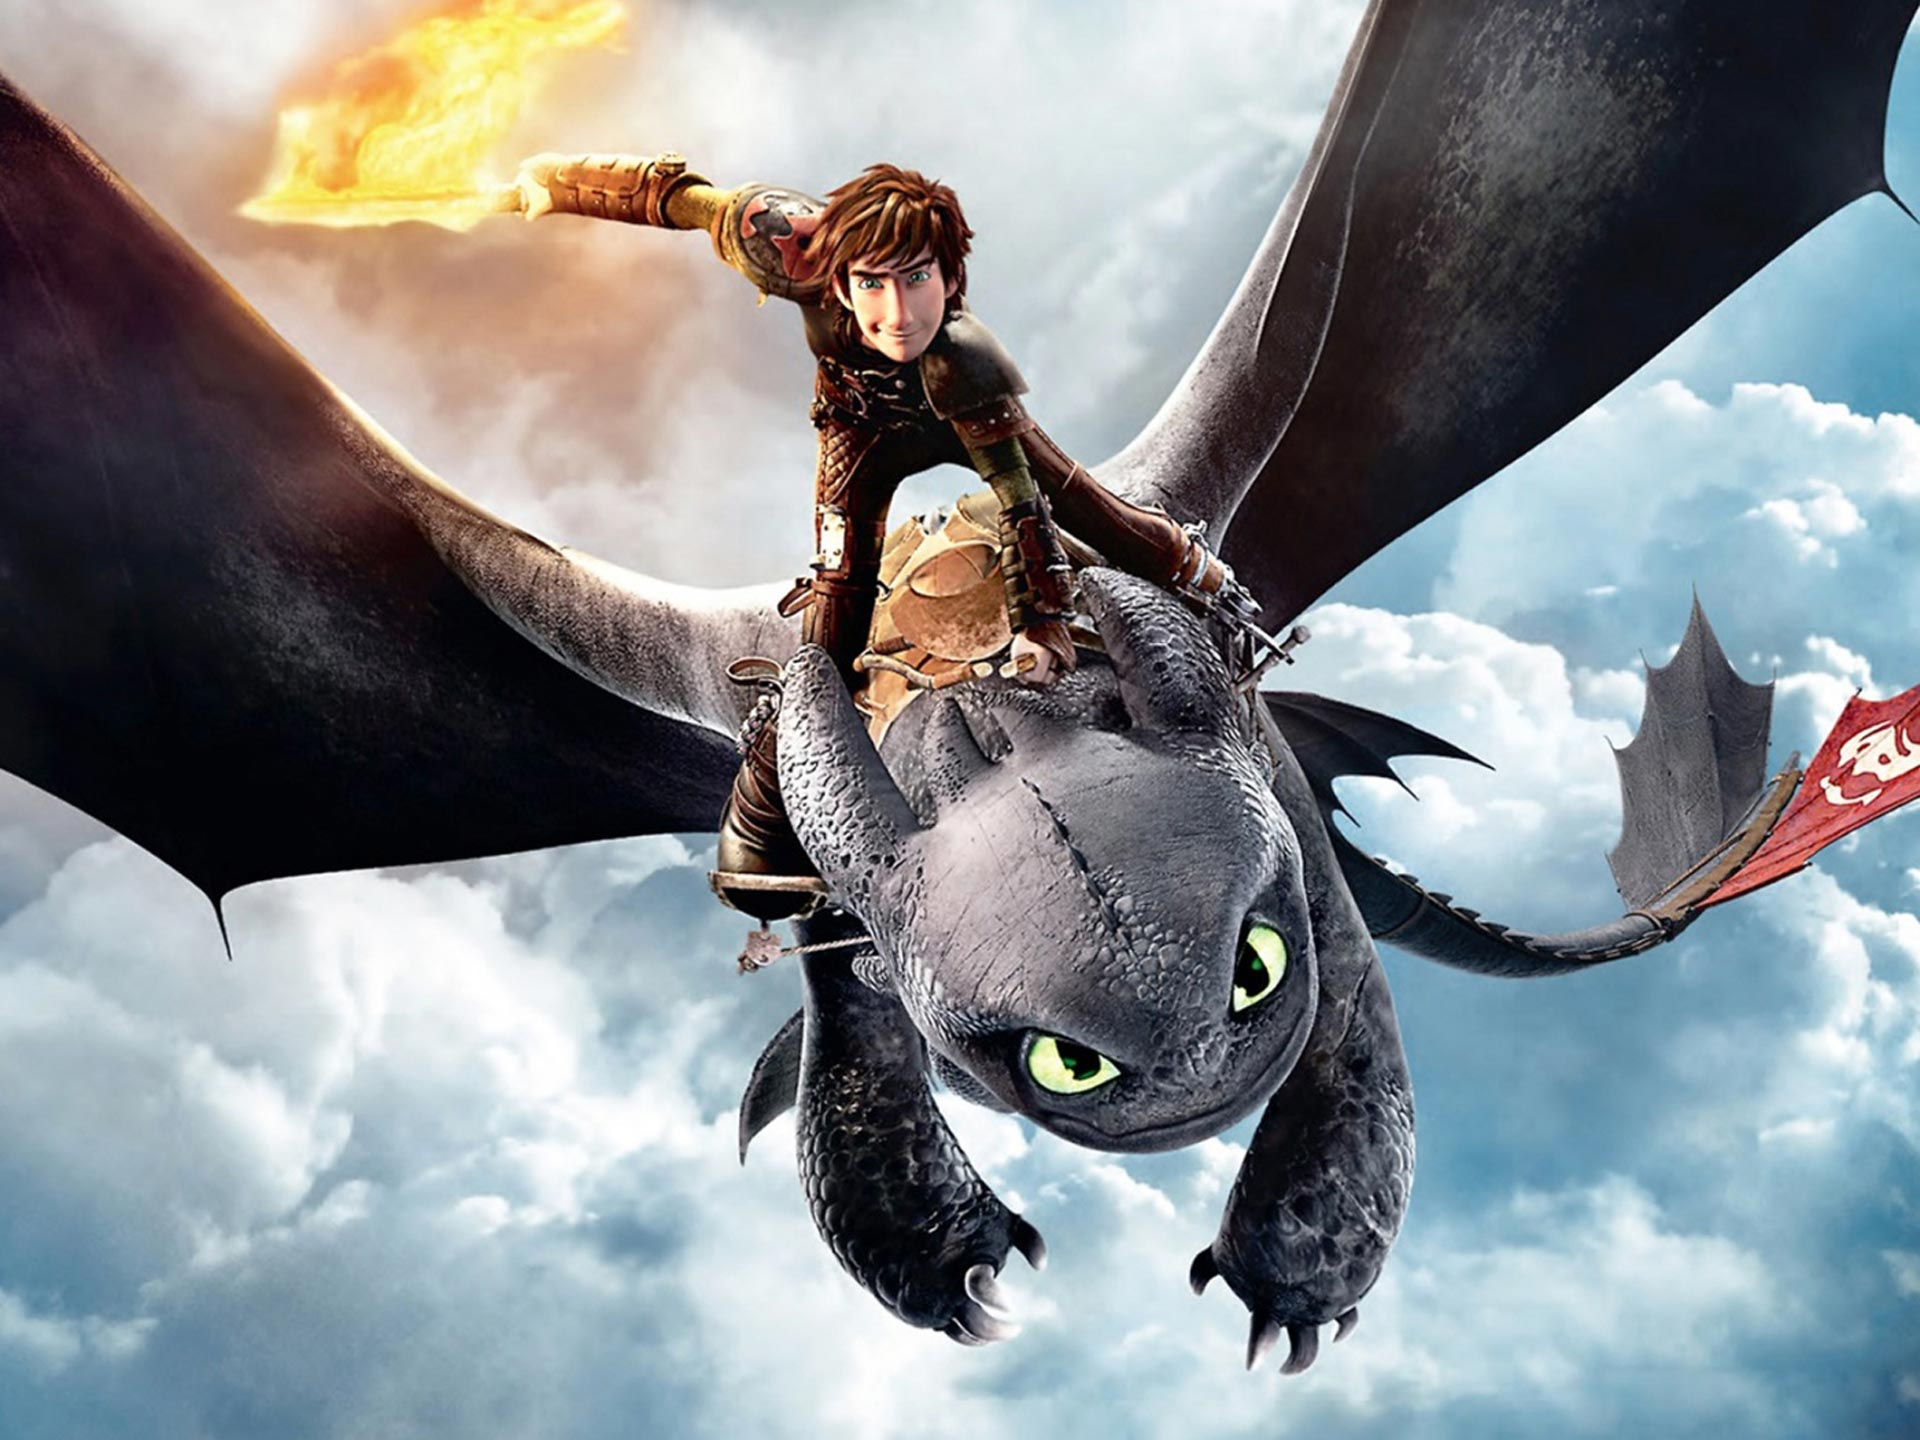 How to train your dragon 2 the discussion ccuart Image collections